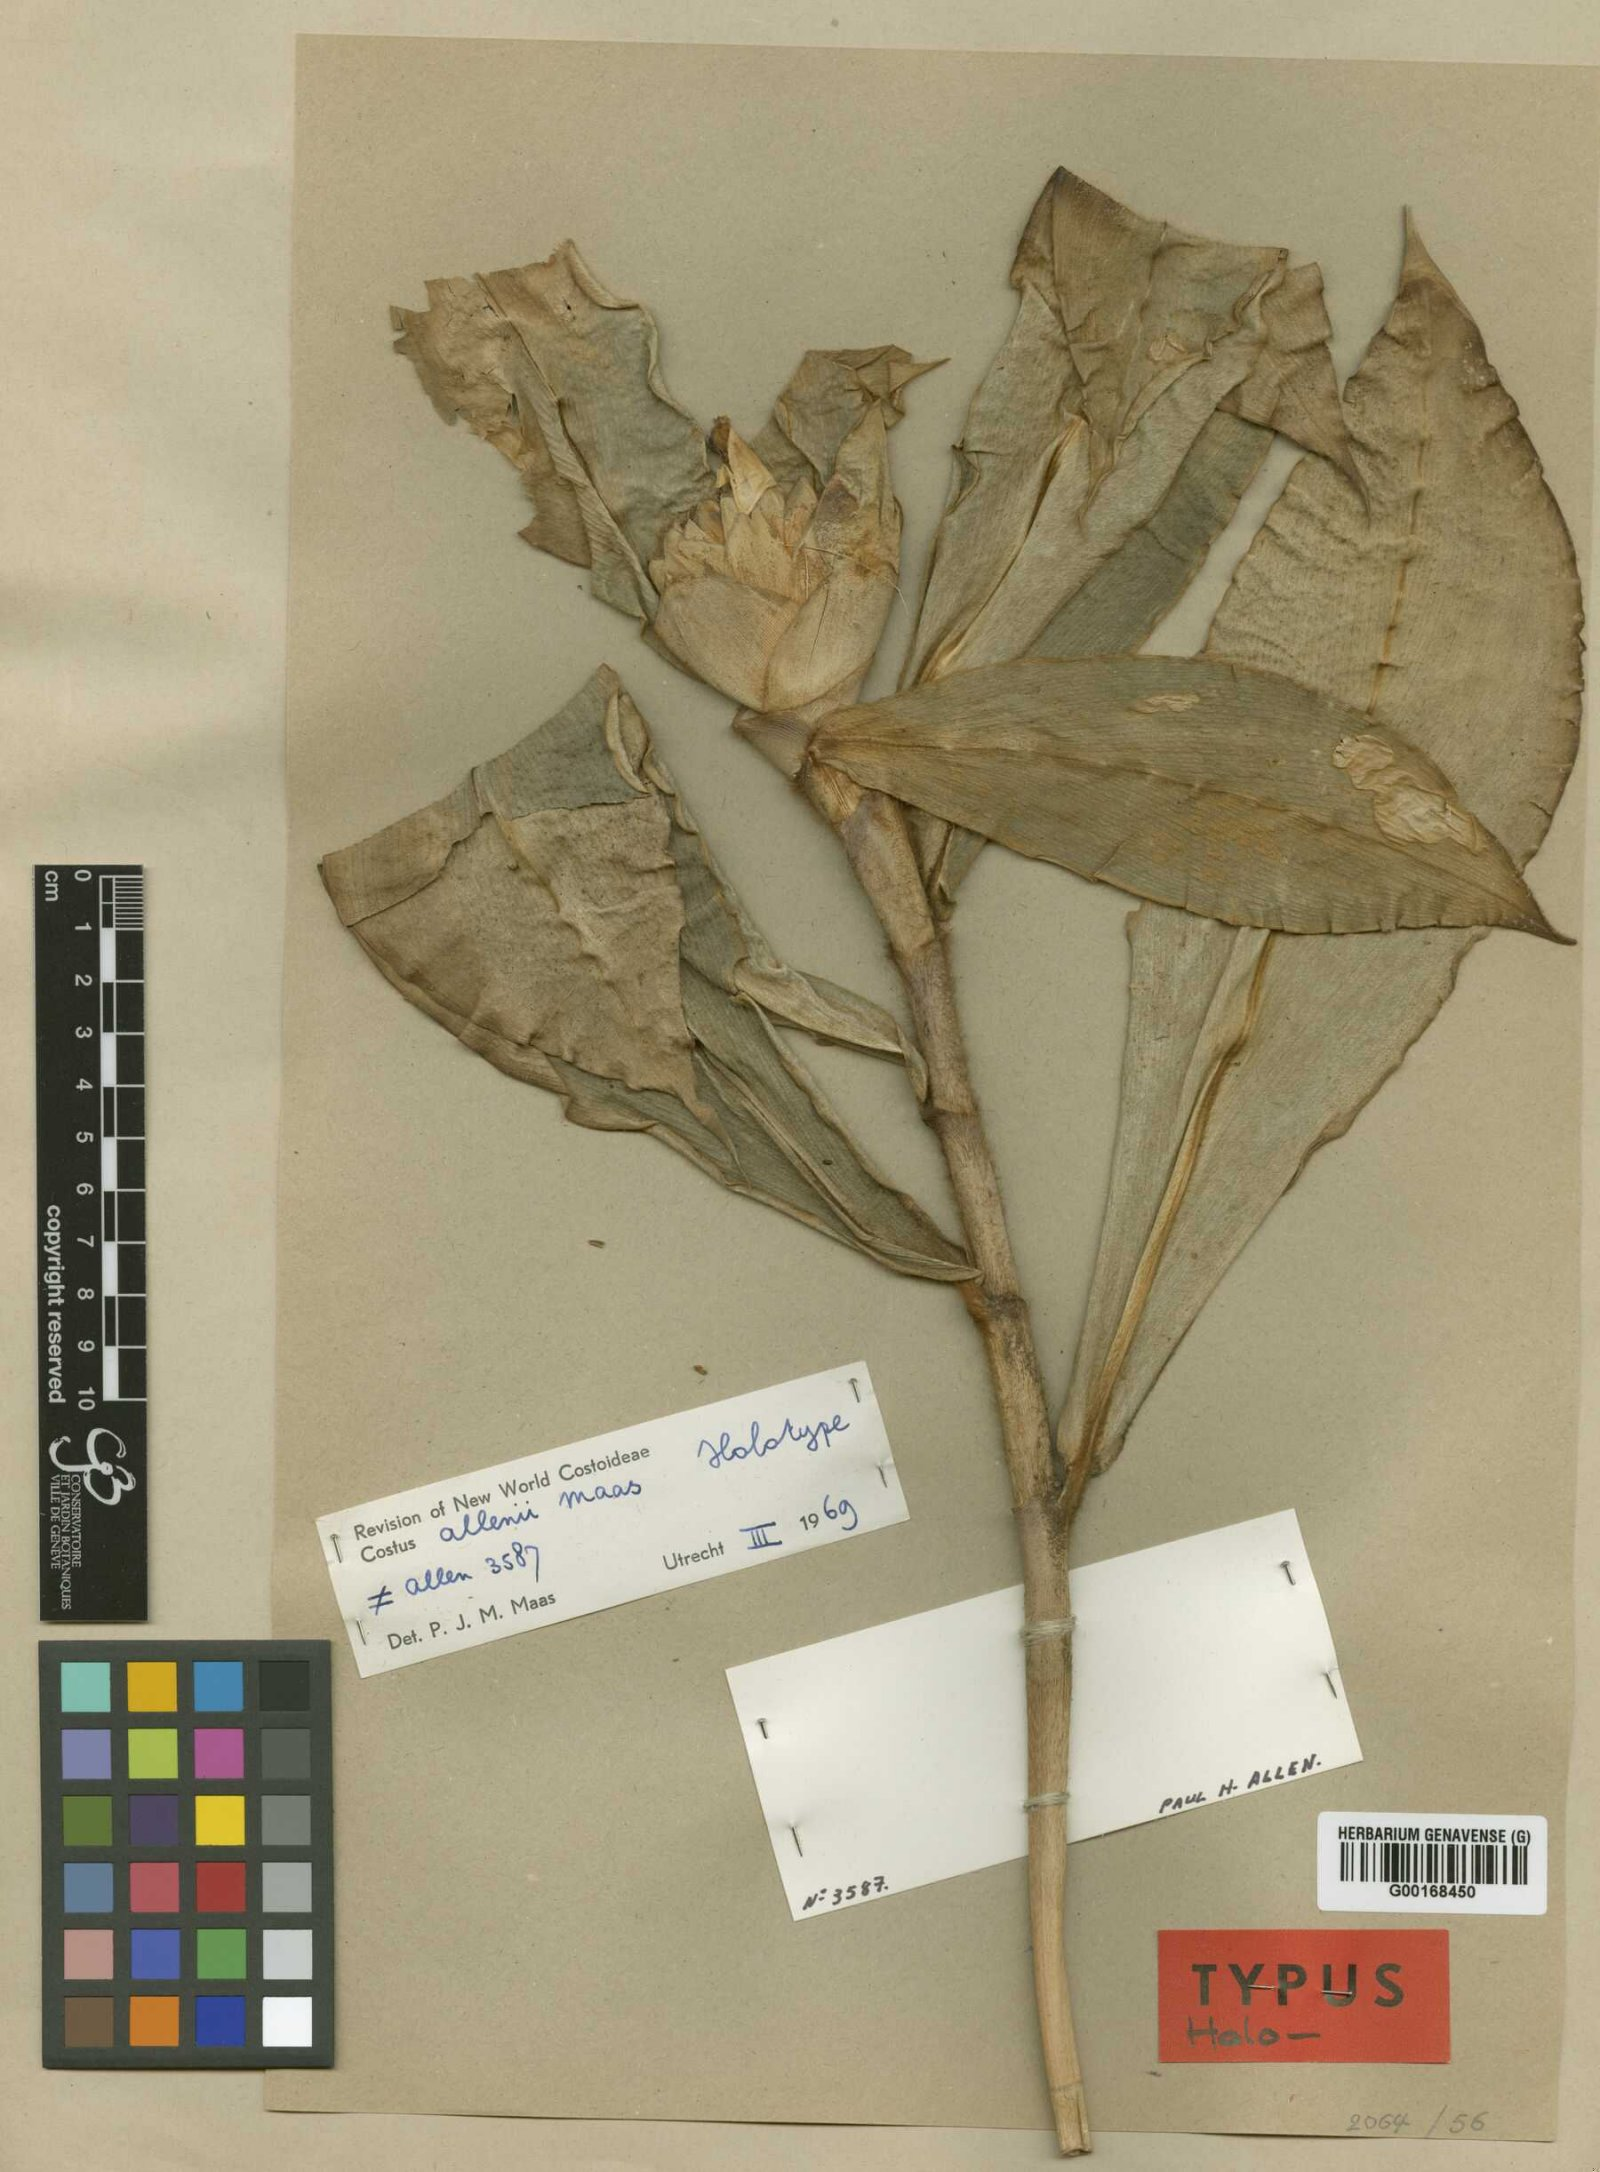 Photo# 17526 - Costus allenii holotype collected by P. H. Allen near the Panama Canal.